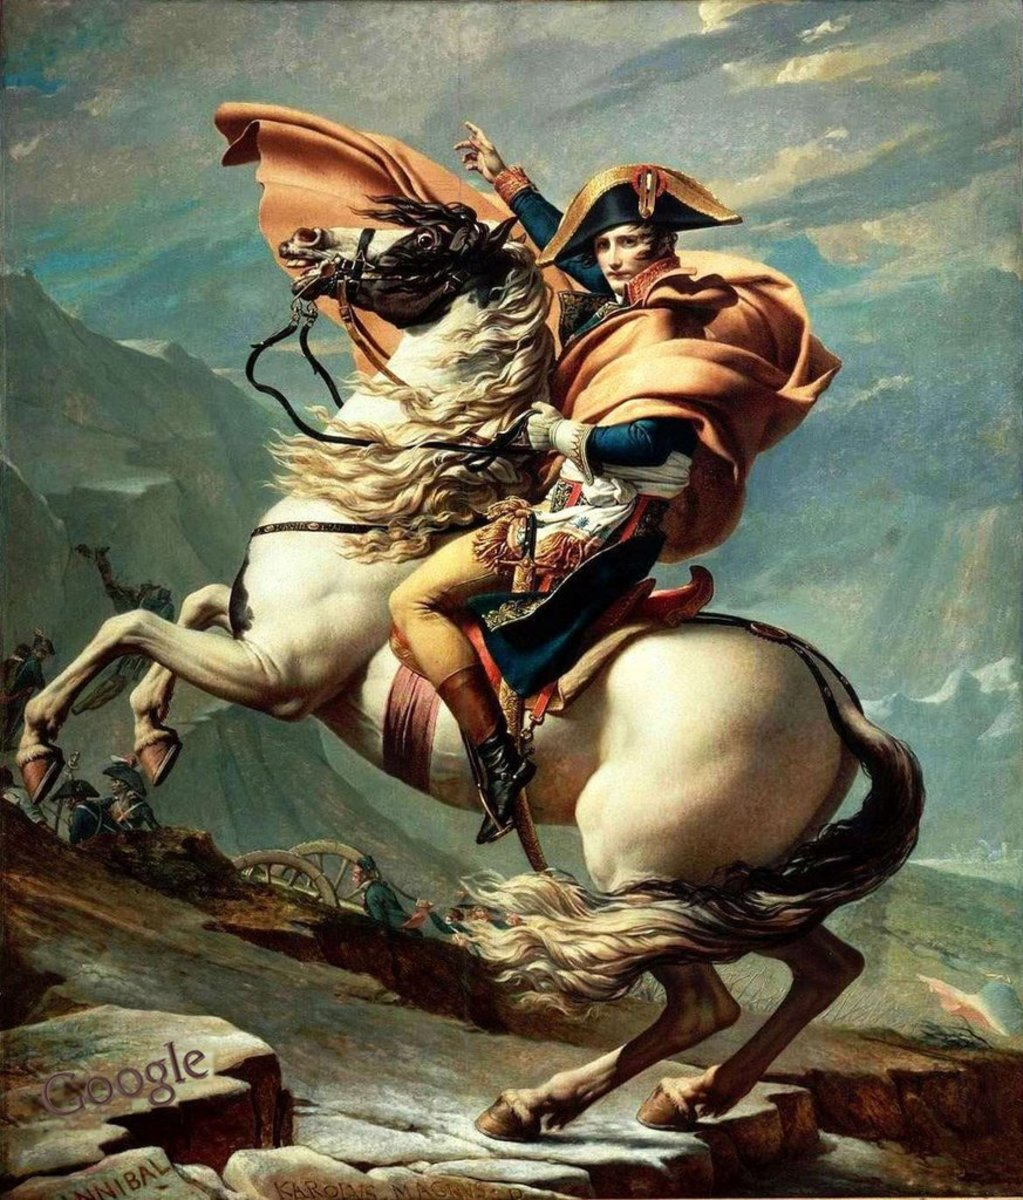 Napoleon Bonaparte (1769-1821) was a French statesman and military leader who rose to power during the French Revolution.